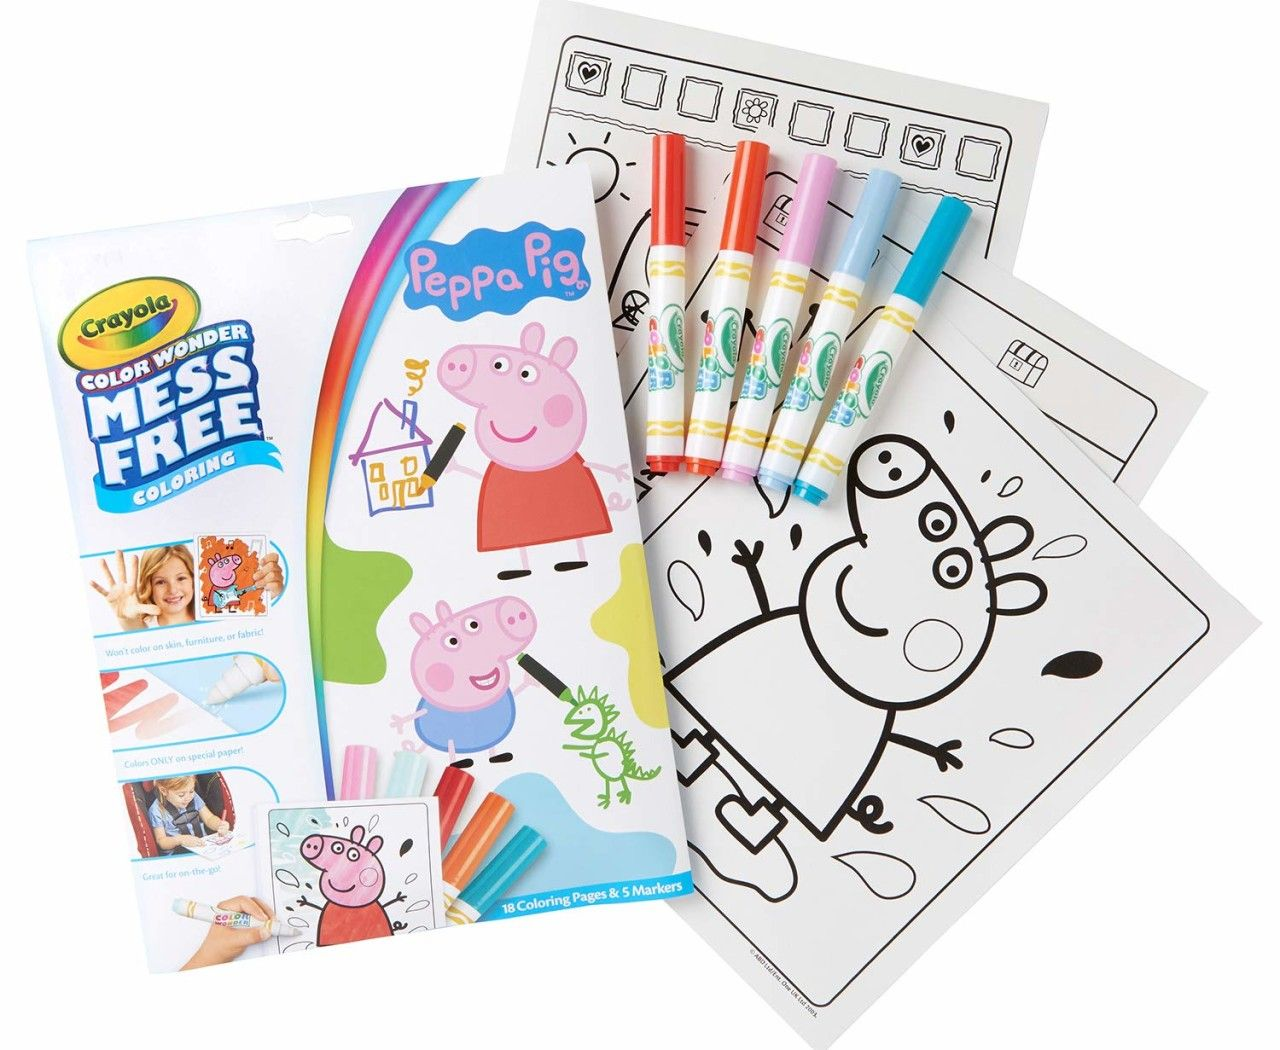 Crayola Color Wonder Peppa Pig Coloring Book Pages Markers Only 4 75 Become A Coupon Queen Peppa Pig Colouring Peppa Pig Coloring Pages Color Wonder